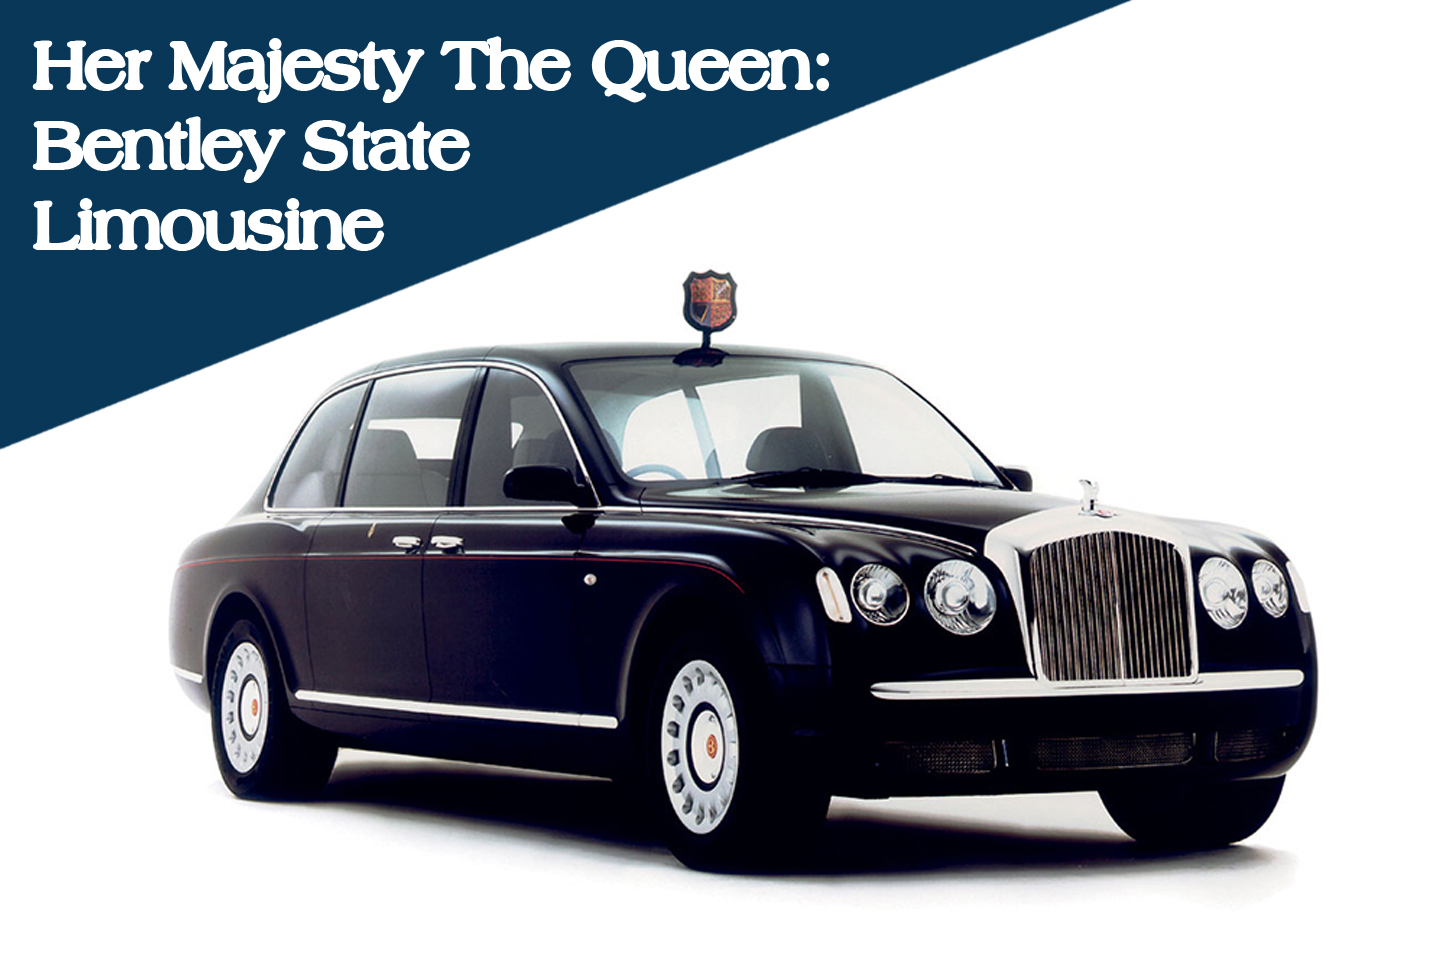 Her Majesty The Queen: Bentley State Limousine